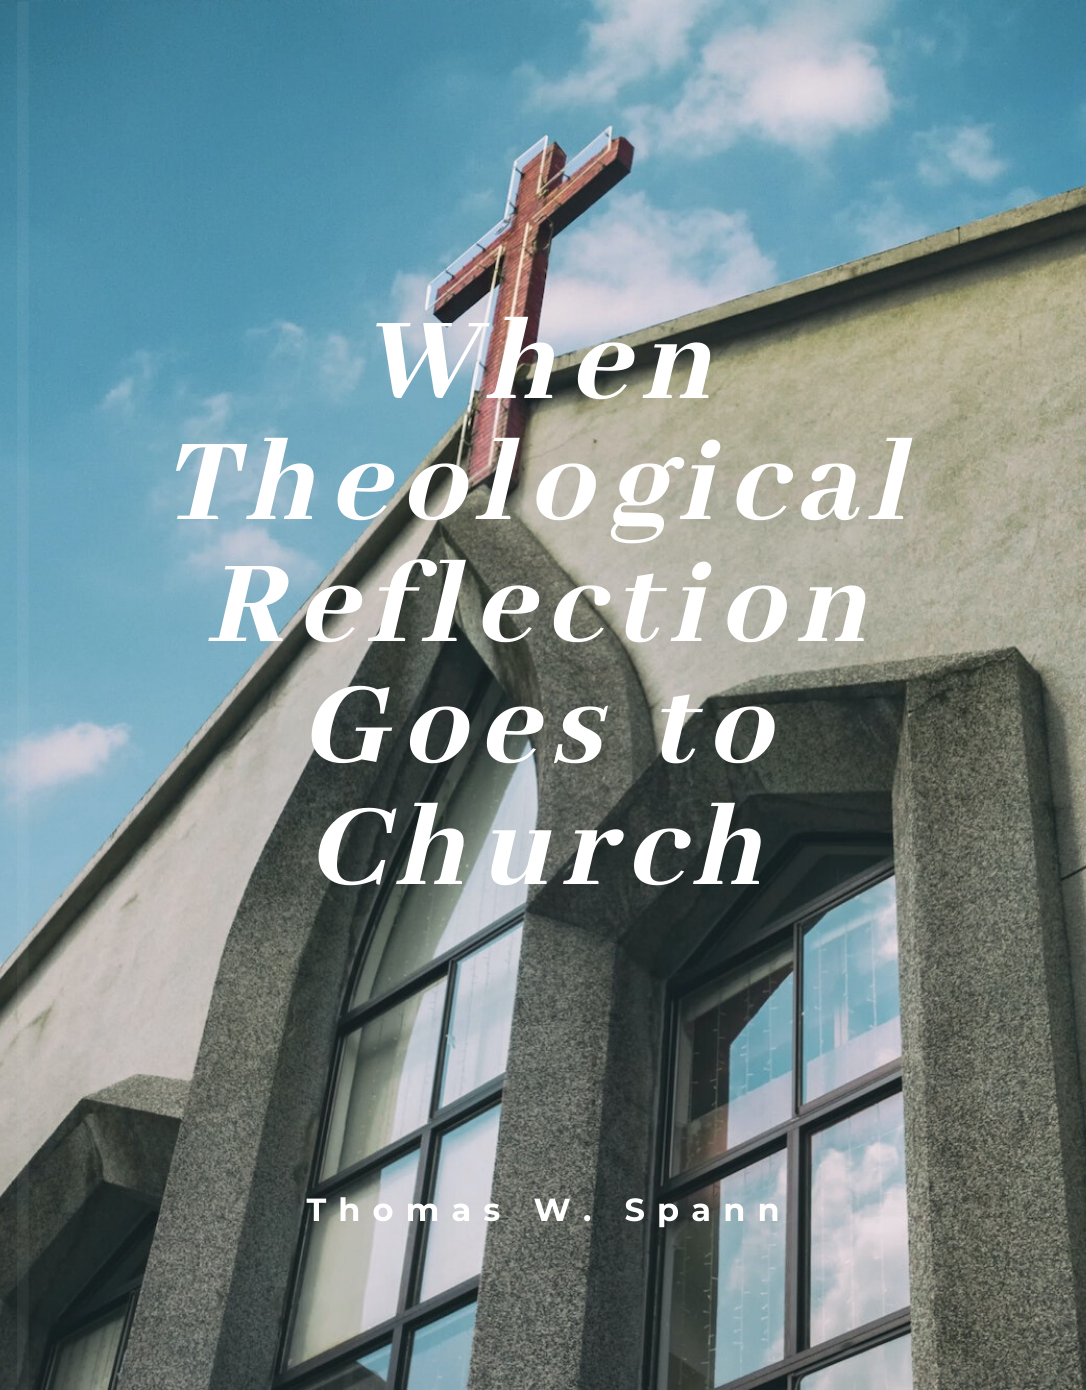 When Theological Reflection Goes to Church by Thomas Spann